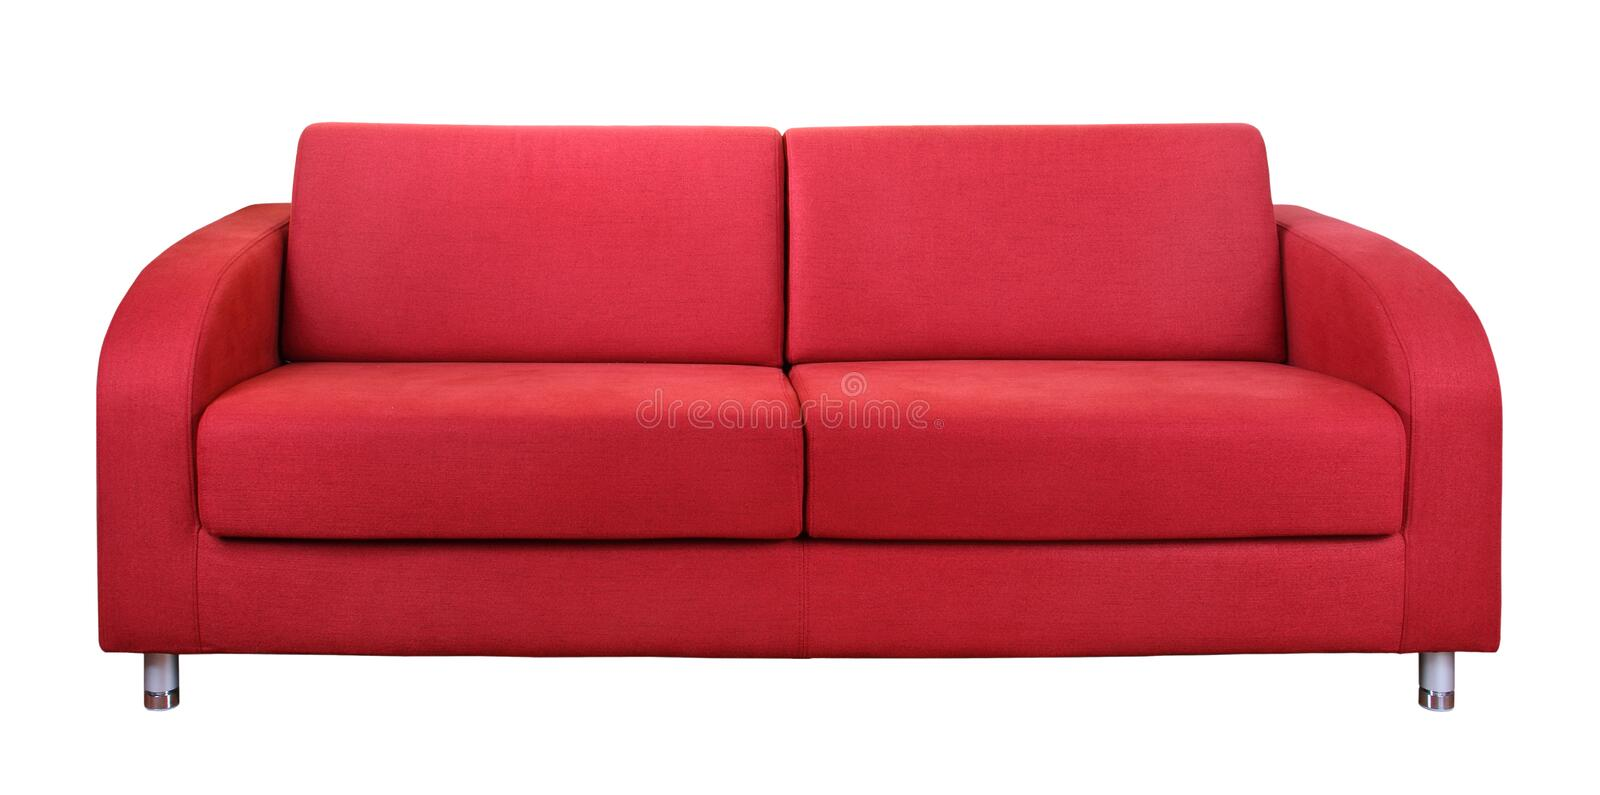 Sofa rouge photos stock